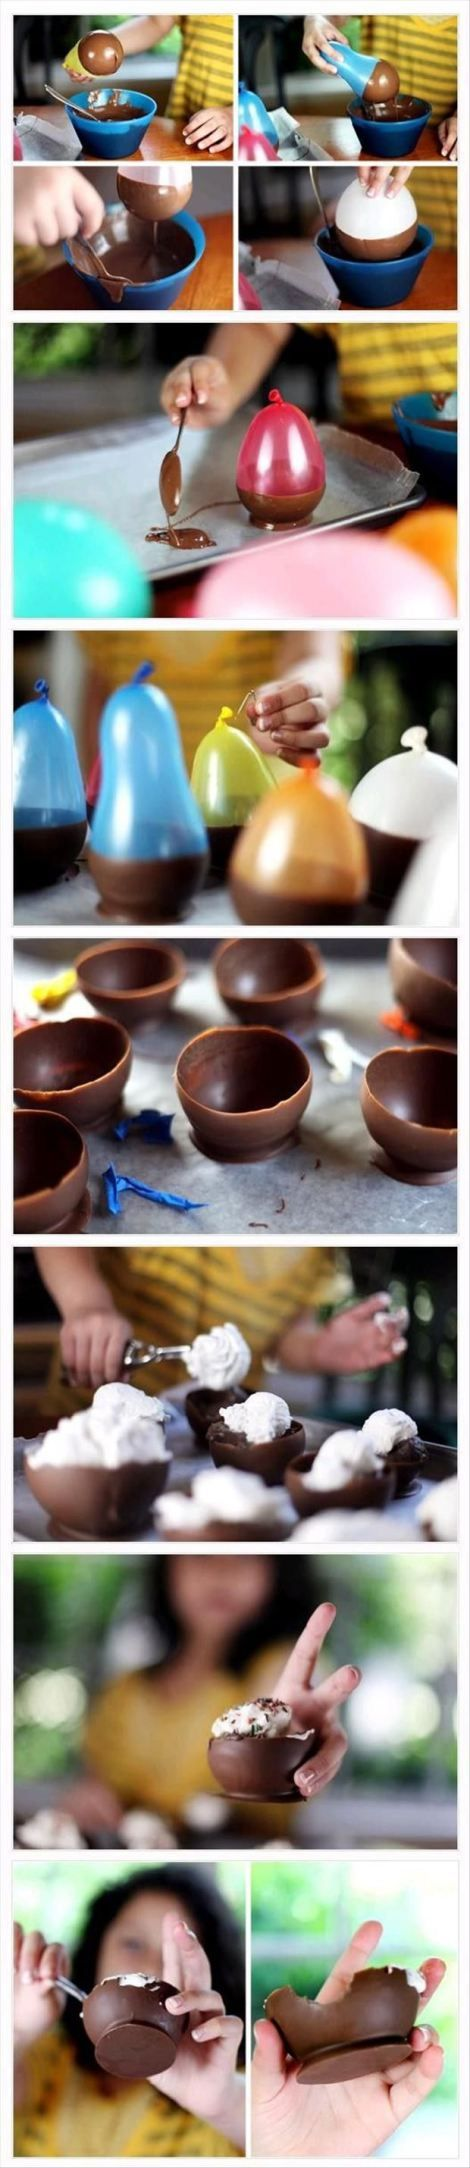 Chocolate Bowls | Butterfly Kisses